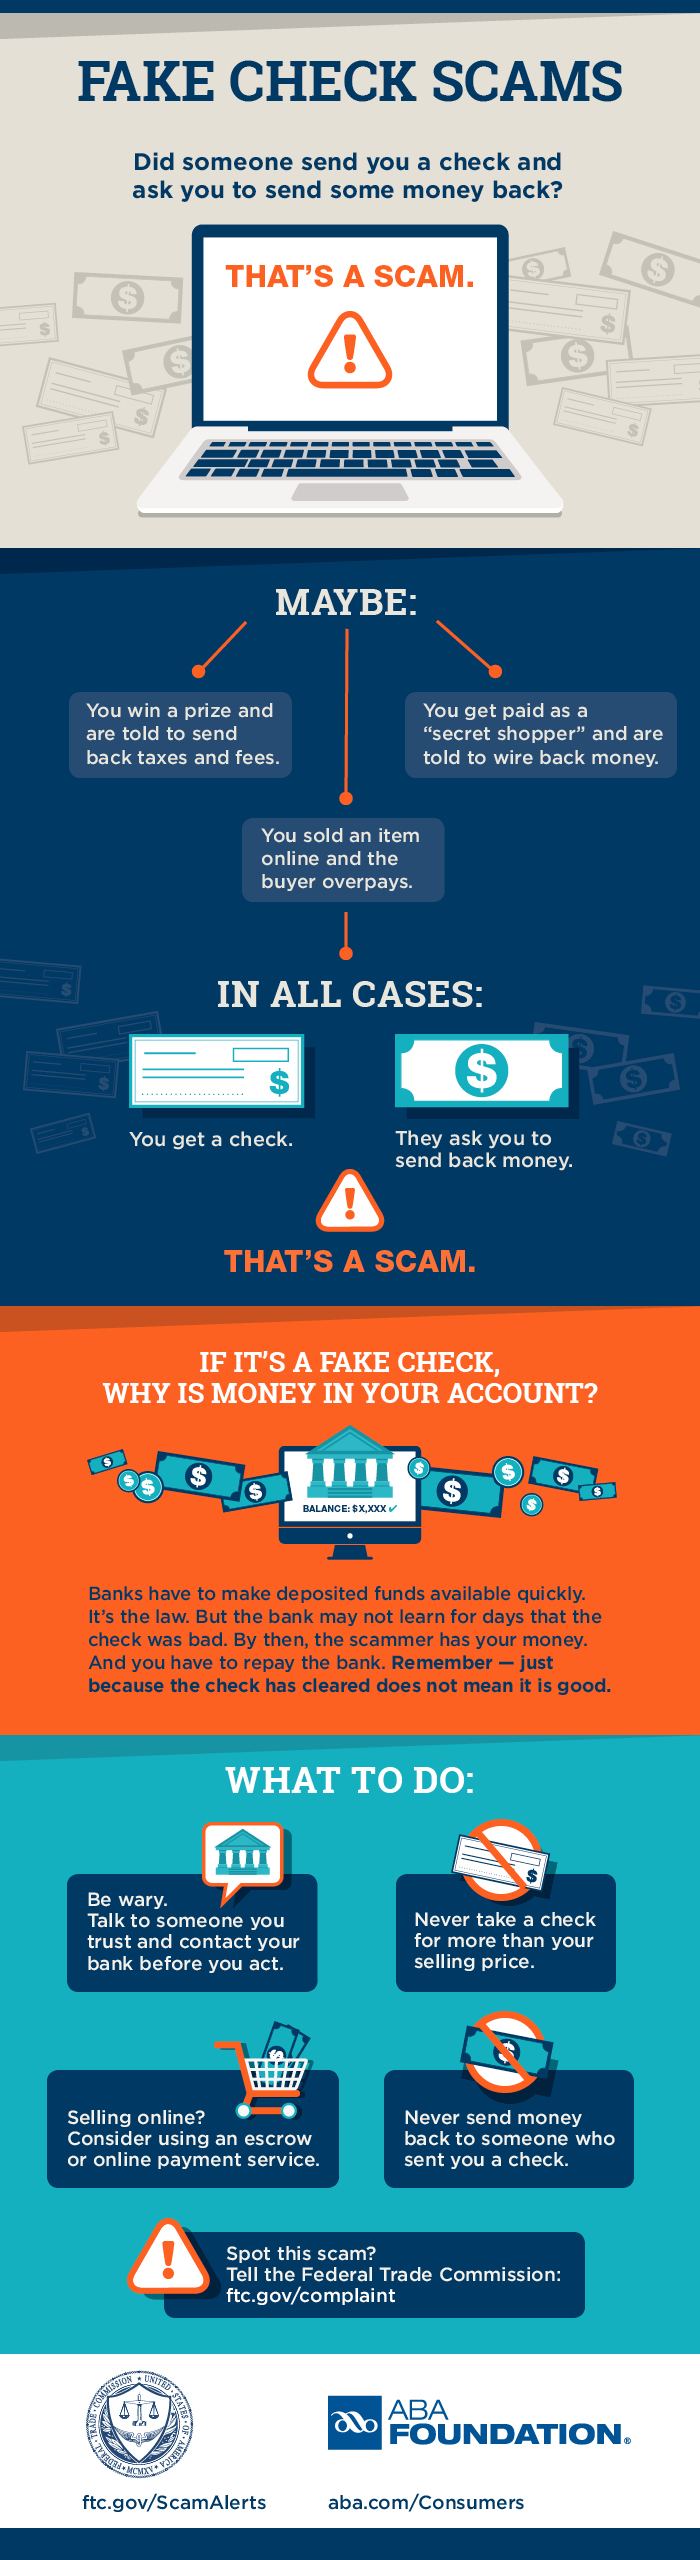 Beware of Fake Check Scams | Honor Bank